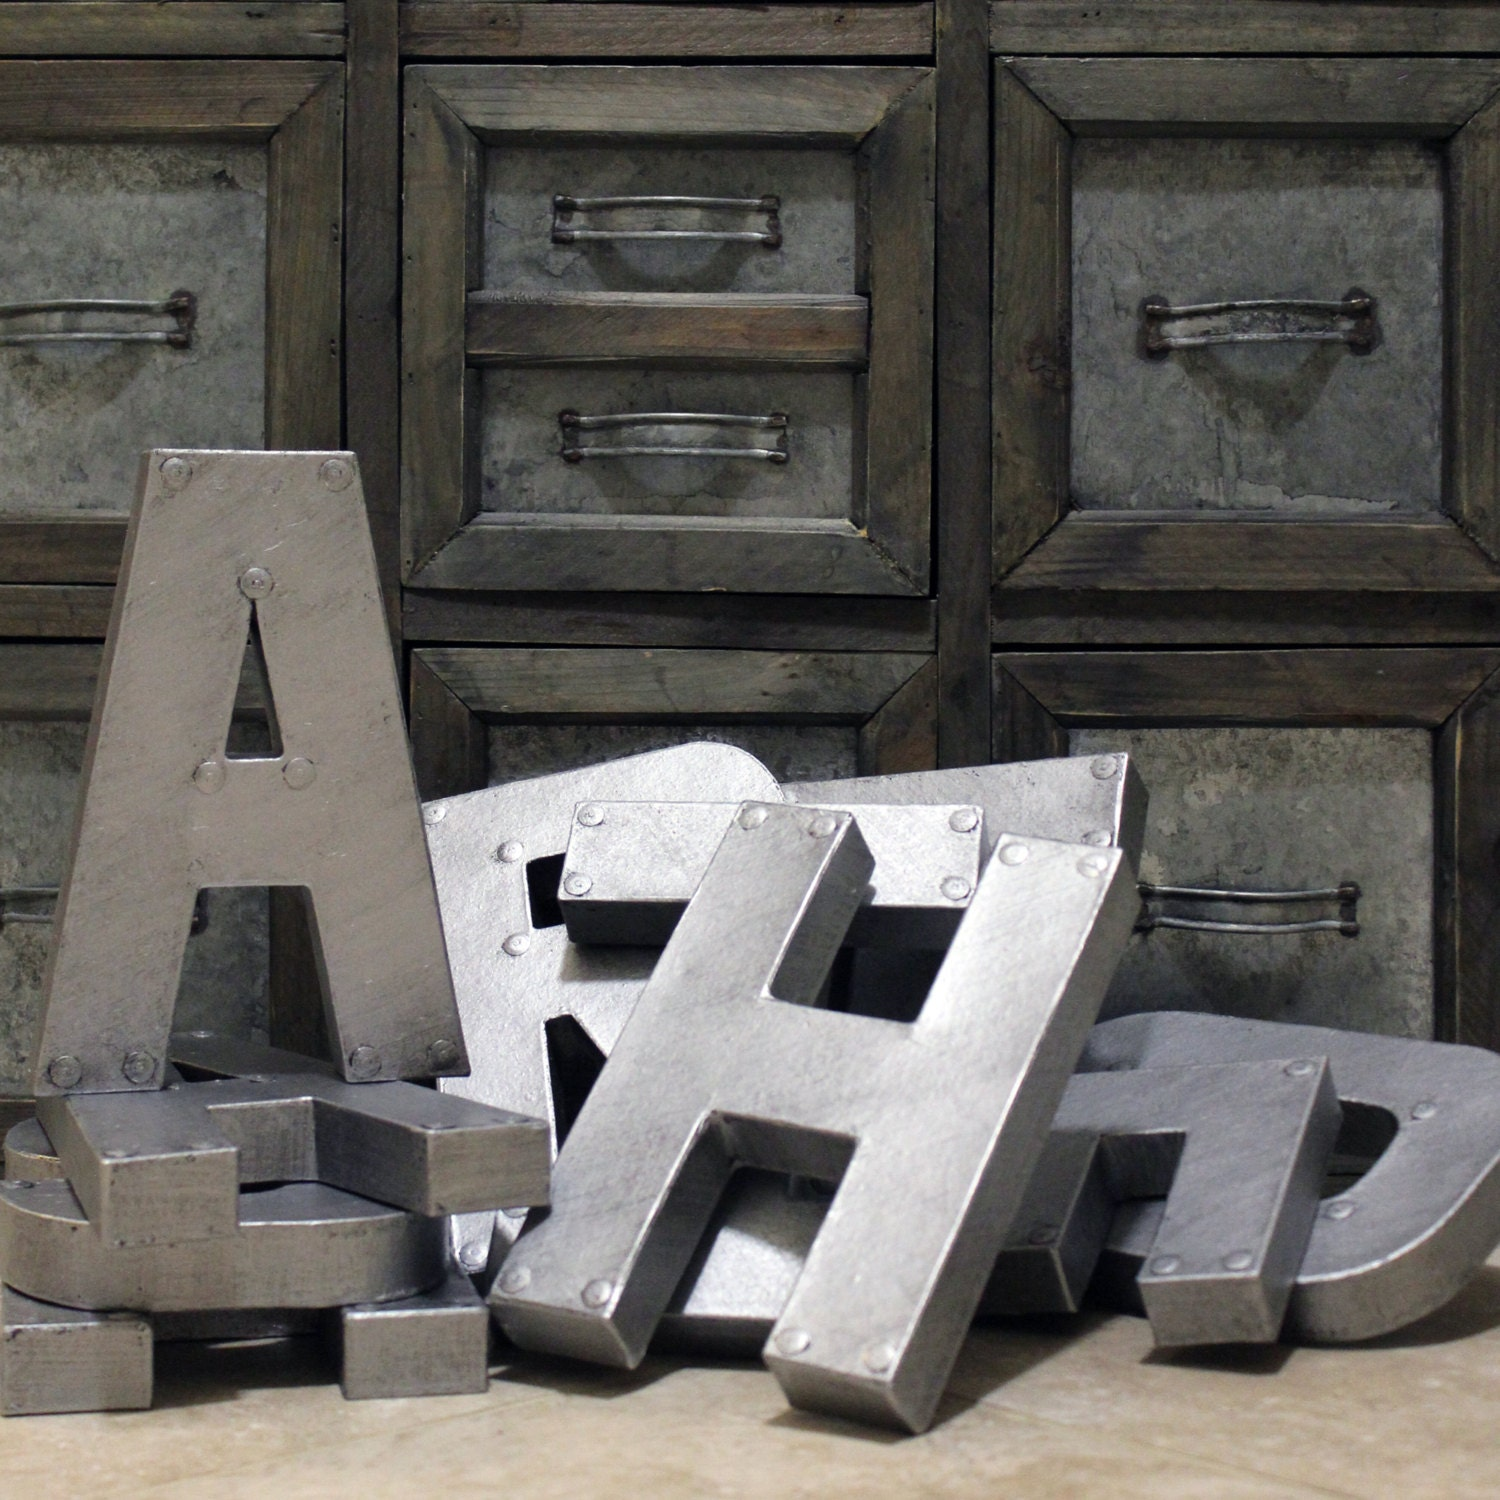 Metal Letters For Wall Decor Captivating Industrial Zinc Faux Metal Letters And Numbers 8 Or Inspiration